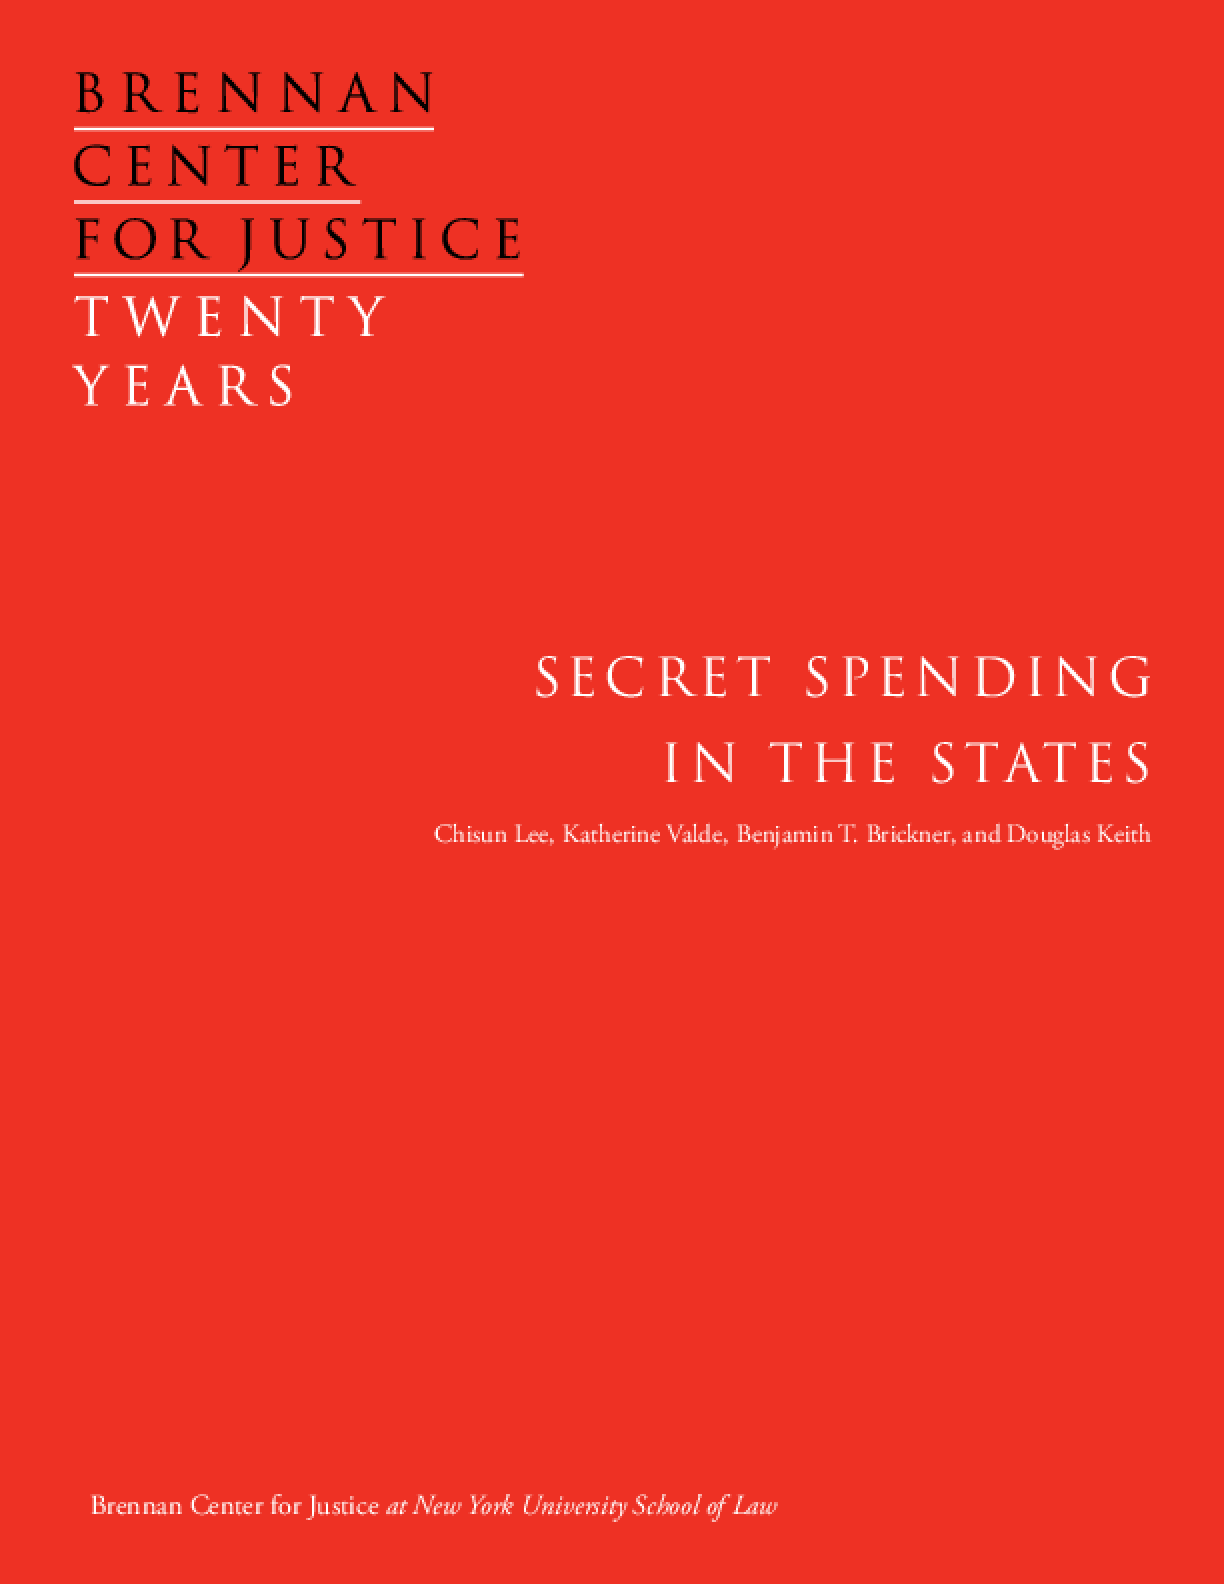 Secret Spending in the States